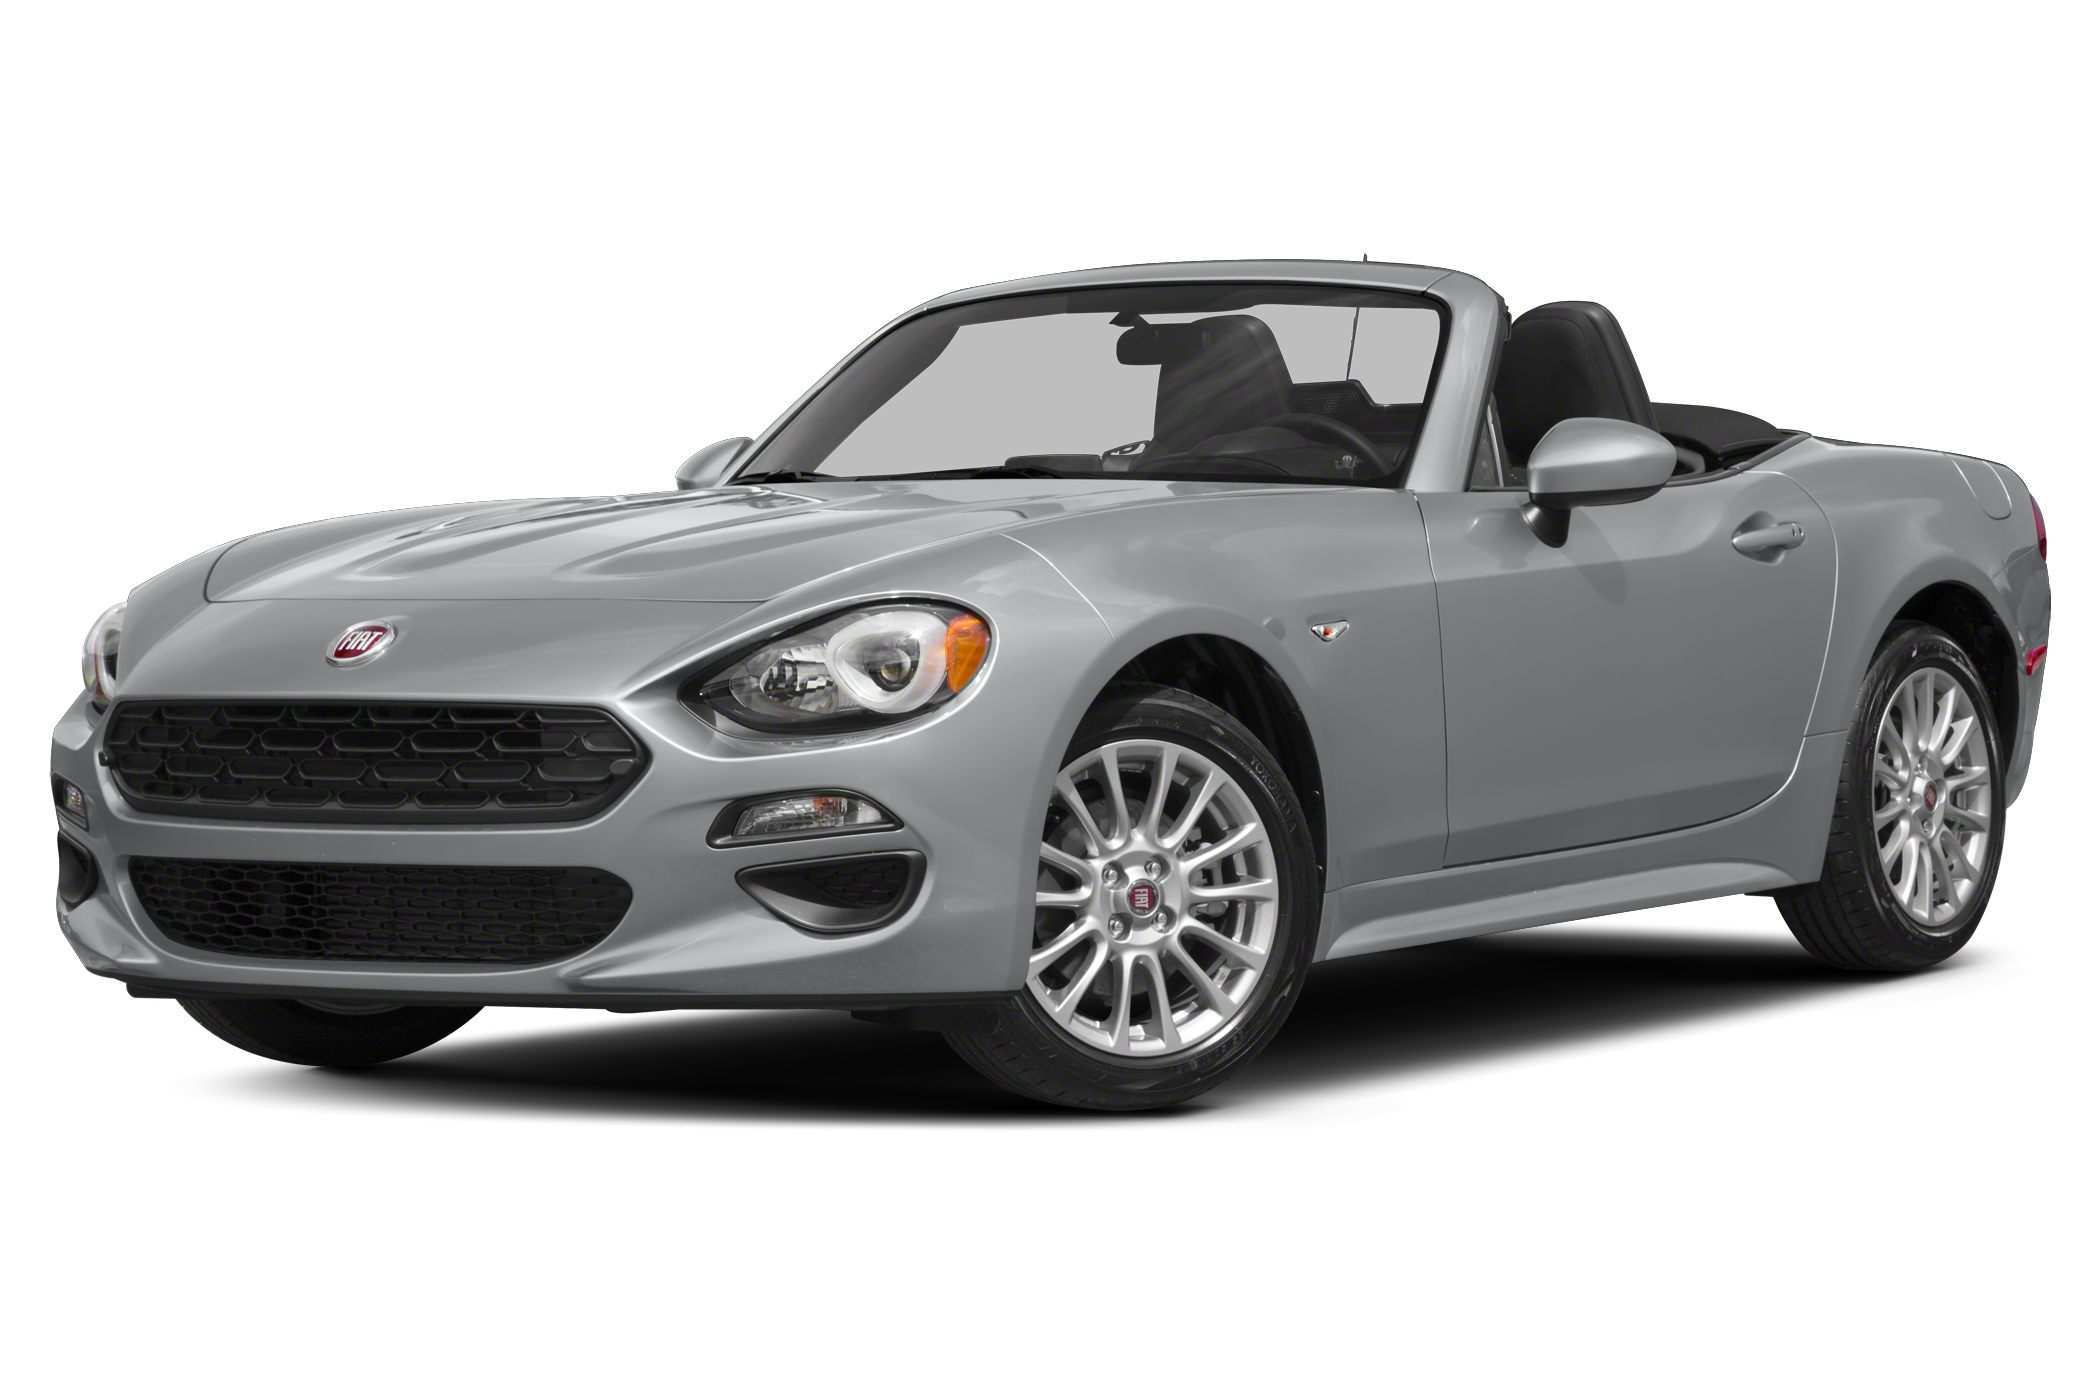 84 All New 2019 Fiat Convertible Research New by 2019 Fiat Convertible